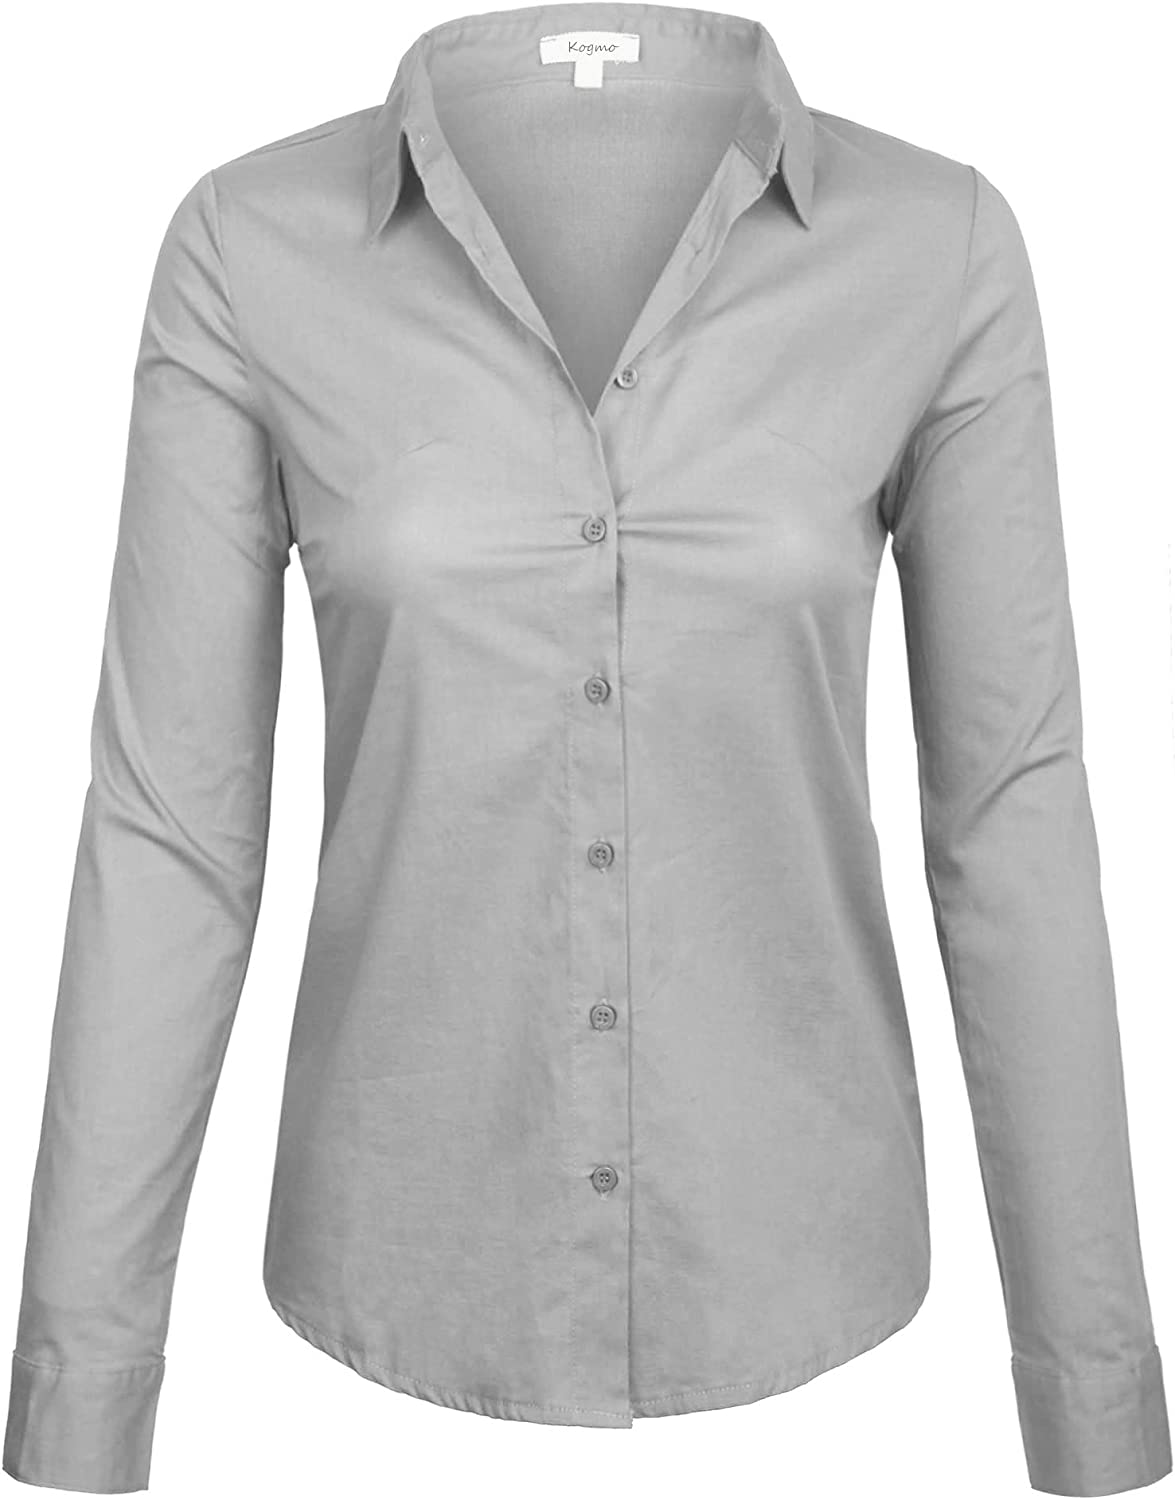 KOGMO Women's Classic Long Sleeve Color Solid Our shop most popular Nashville-Davidson Mall Down Simple Button